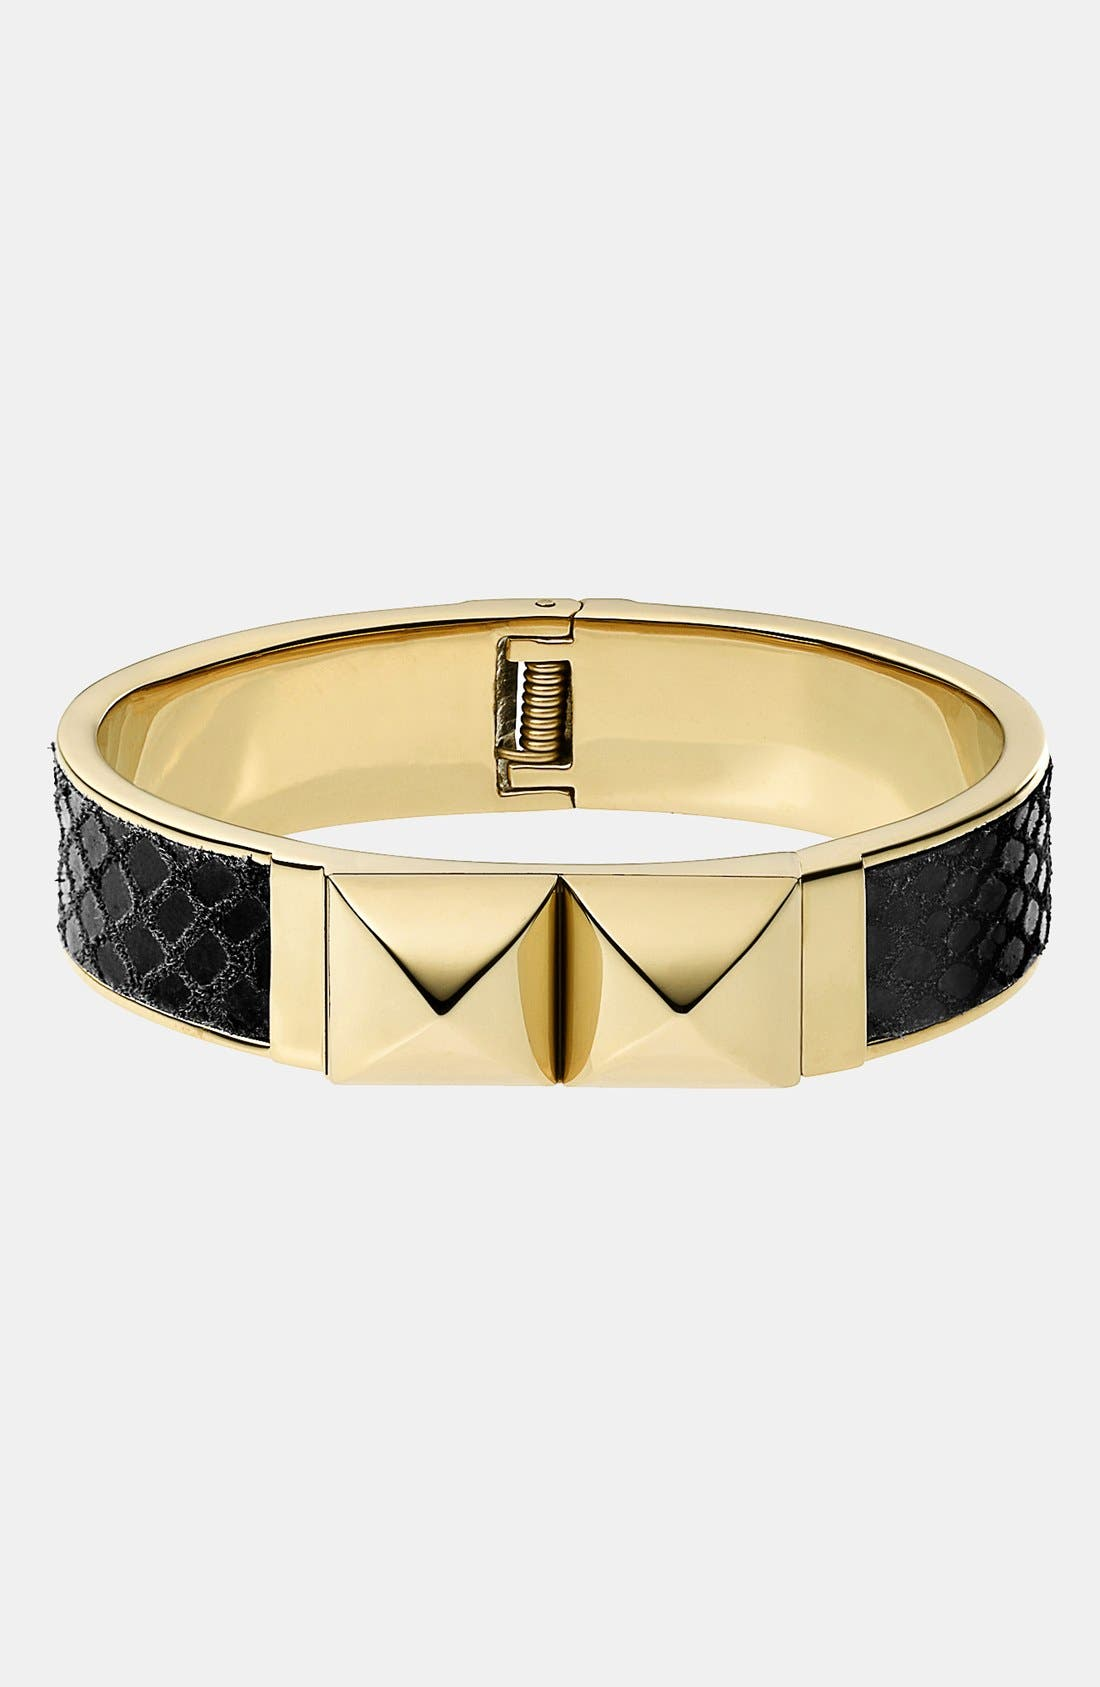 Main Image - Michael Kors 'Glam Rock' Hinged Bangle